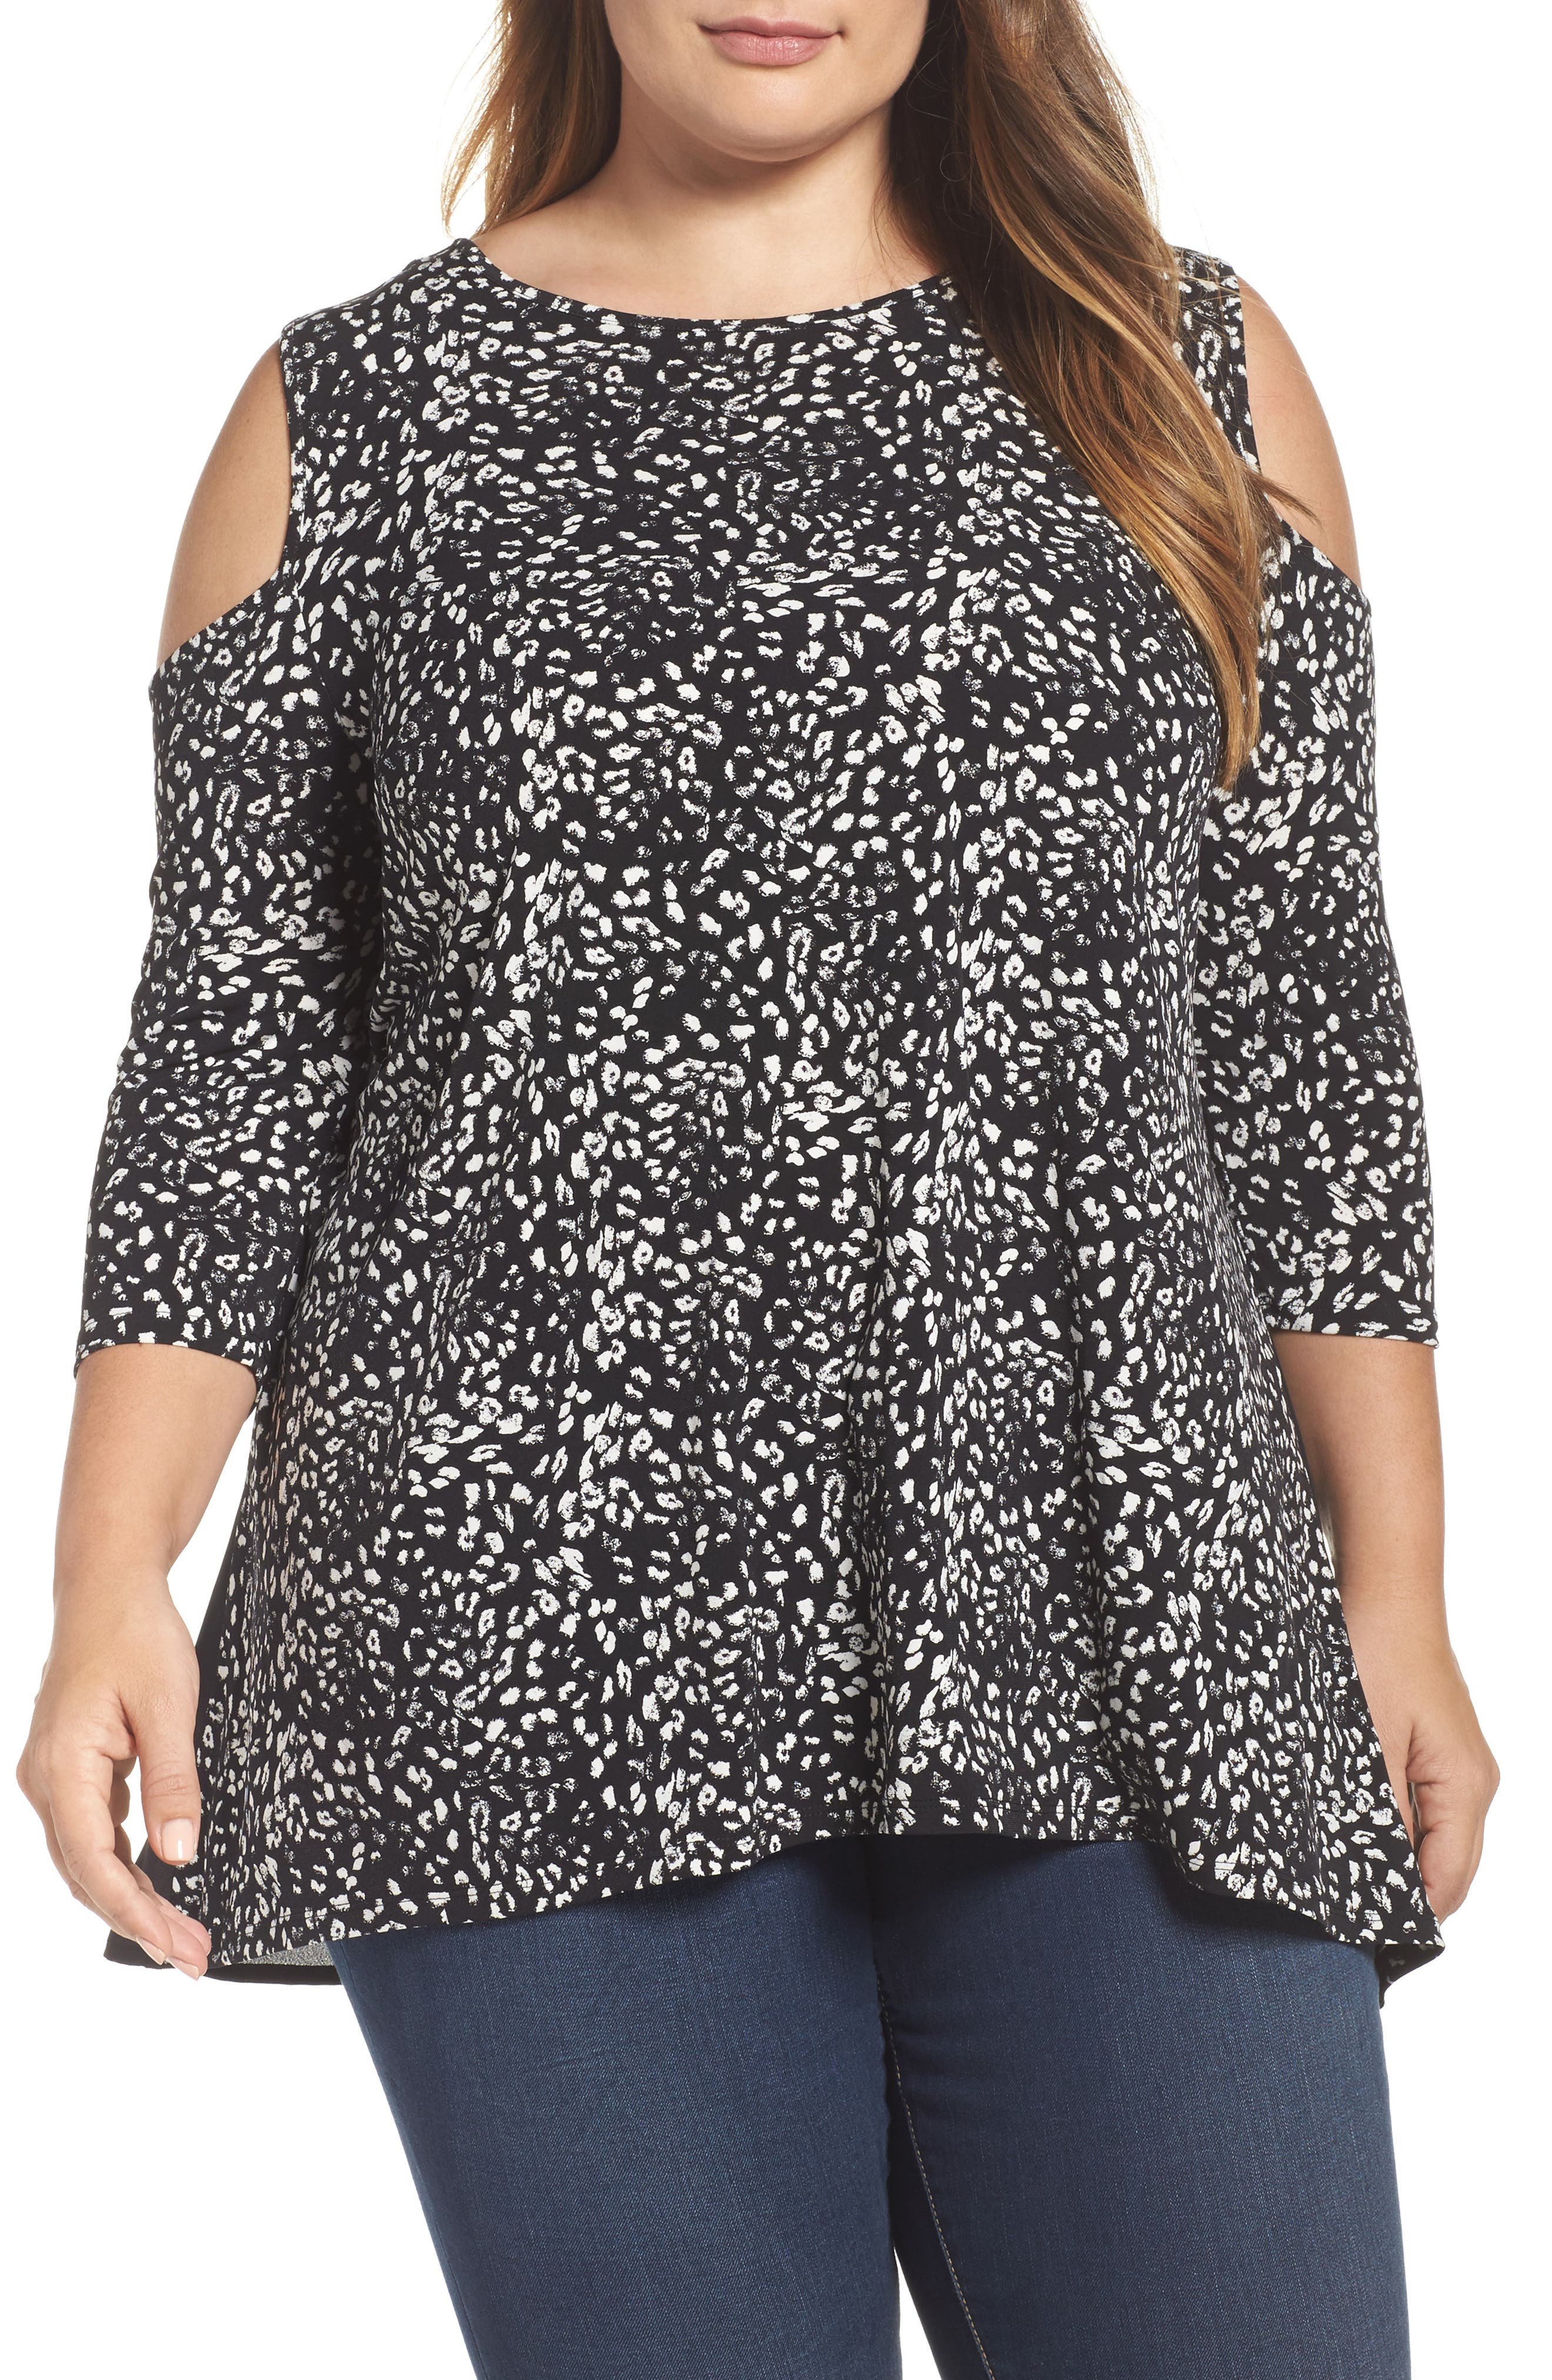 Animal Whispers Cold Shoulder Top,                             Main thumbnail 1, color,                             010